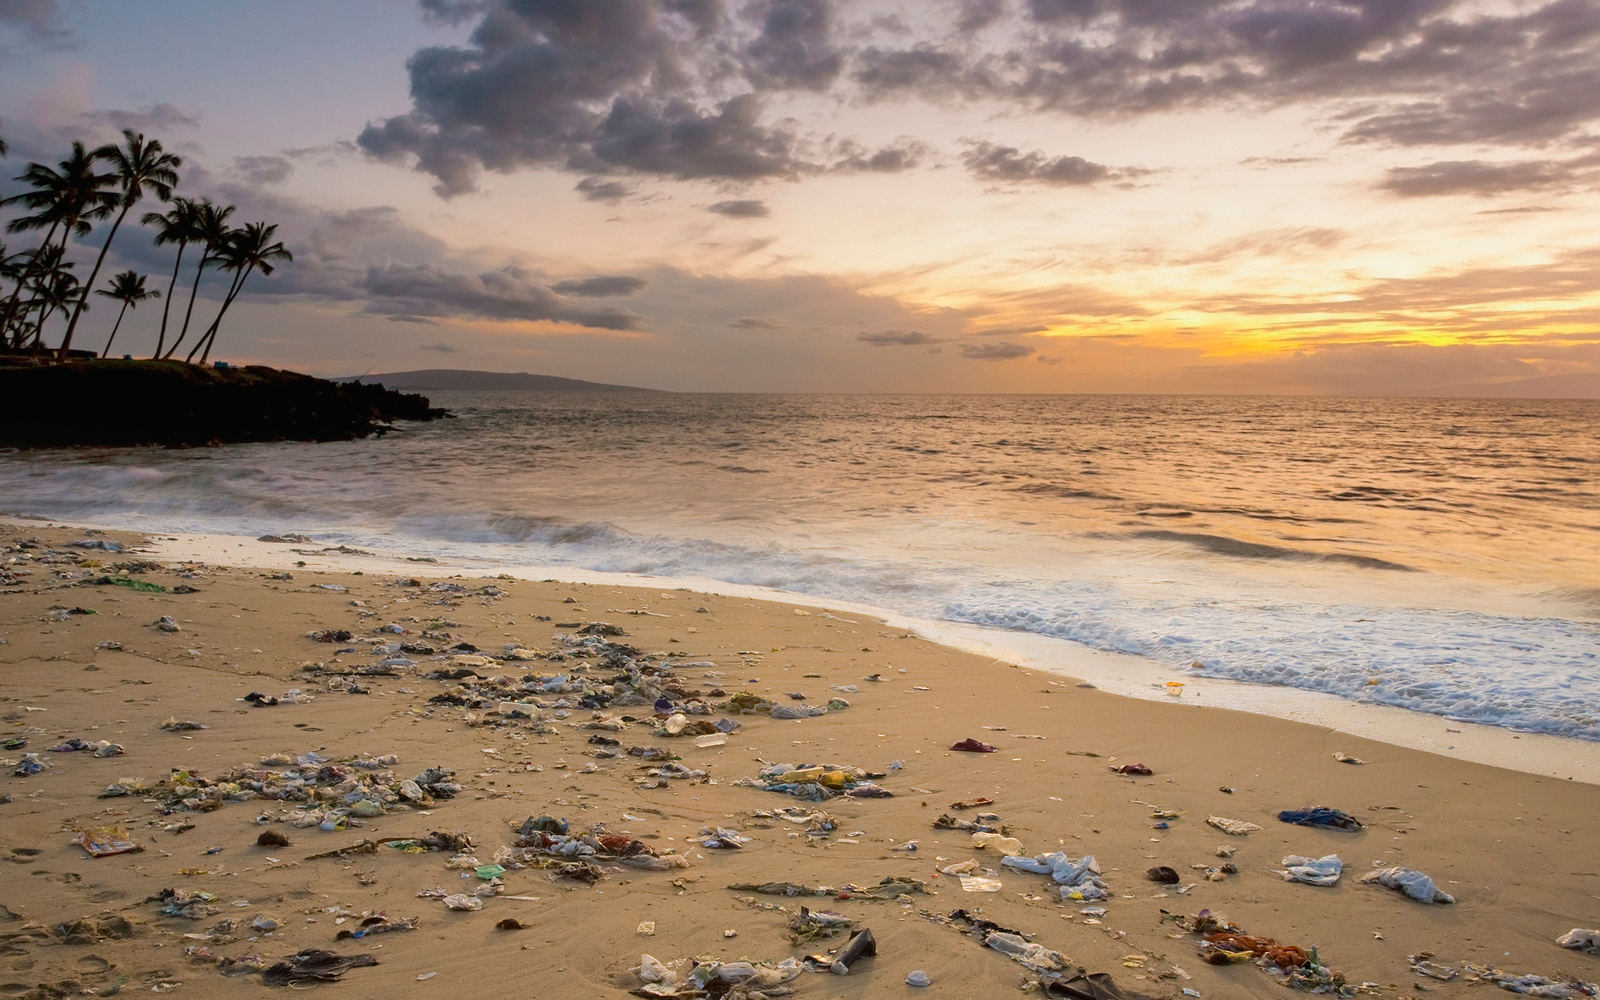 New Aerial Survey Reveals Hawaii's Beaches are Littered With Garbage